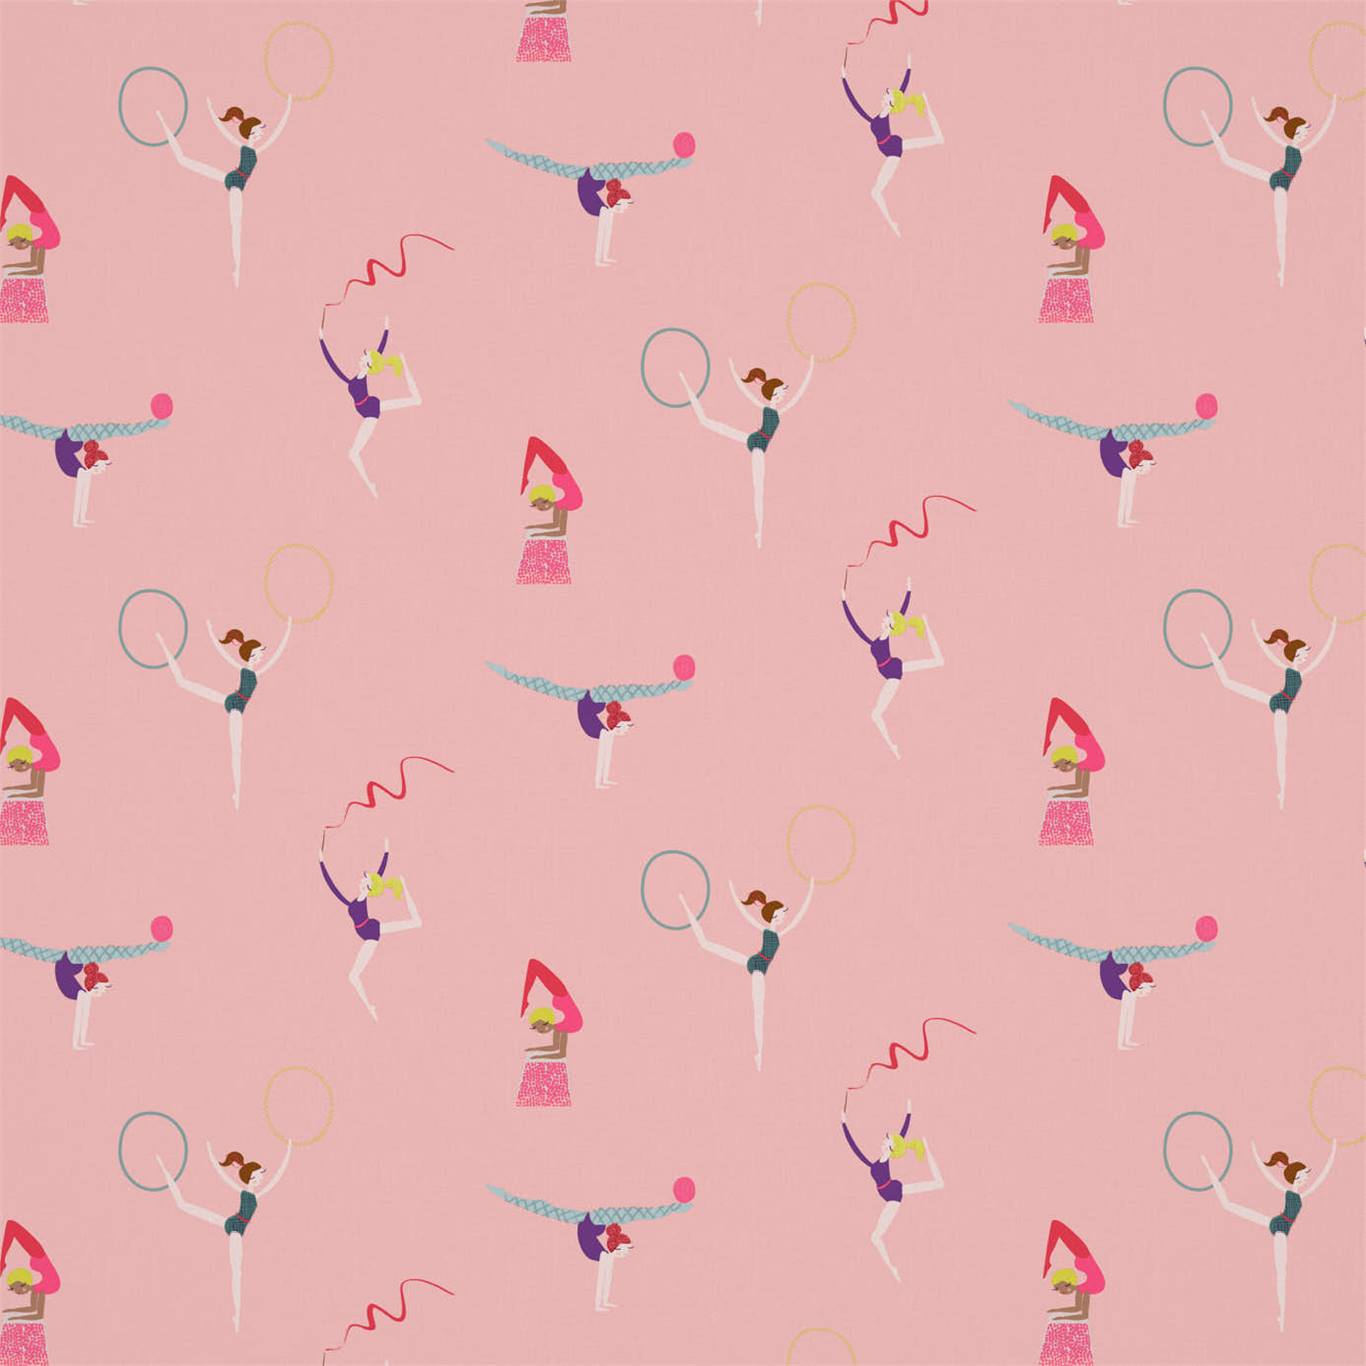 'Balancing Act' - a new fabric and wallcovering by Harlequin, featuring dancers, ballerinas and gymnasts.